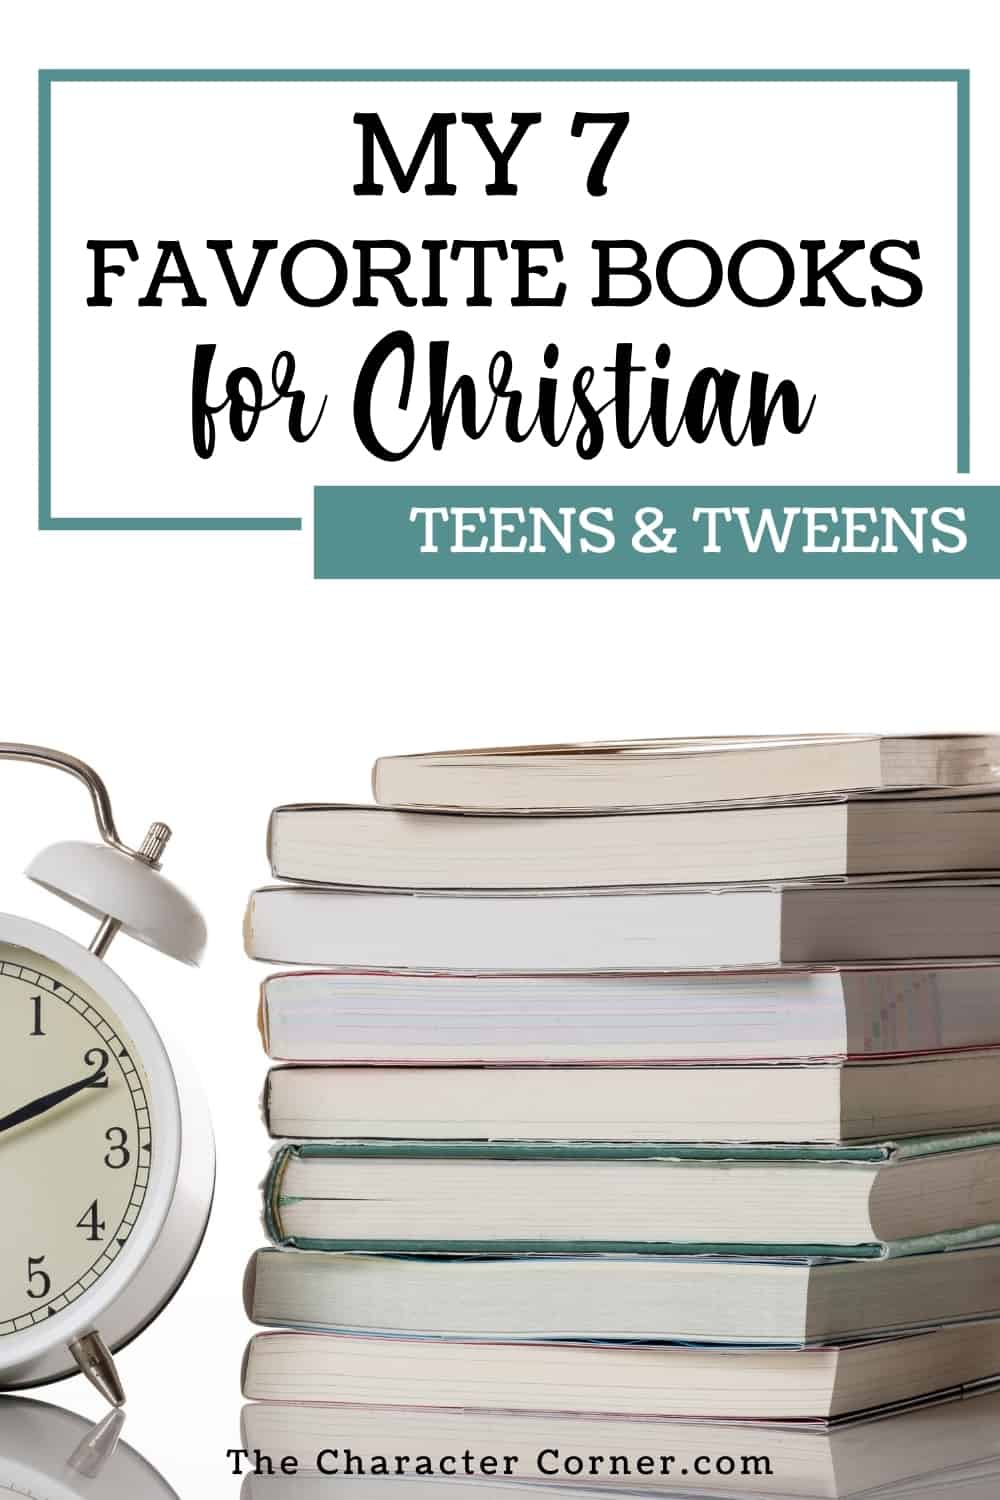 STack of books text on image reads my 7 favorite books for Christian Tweens and Teens